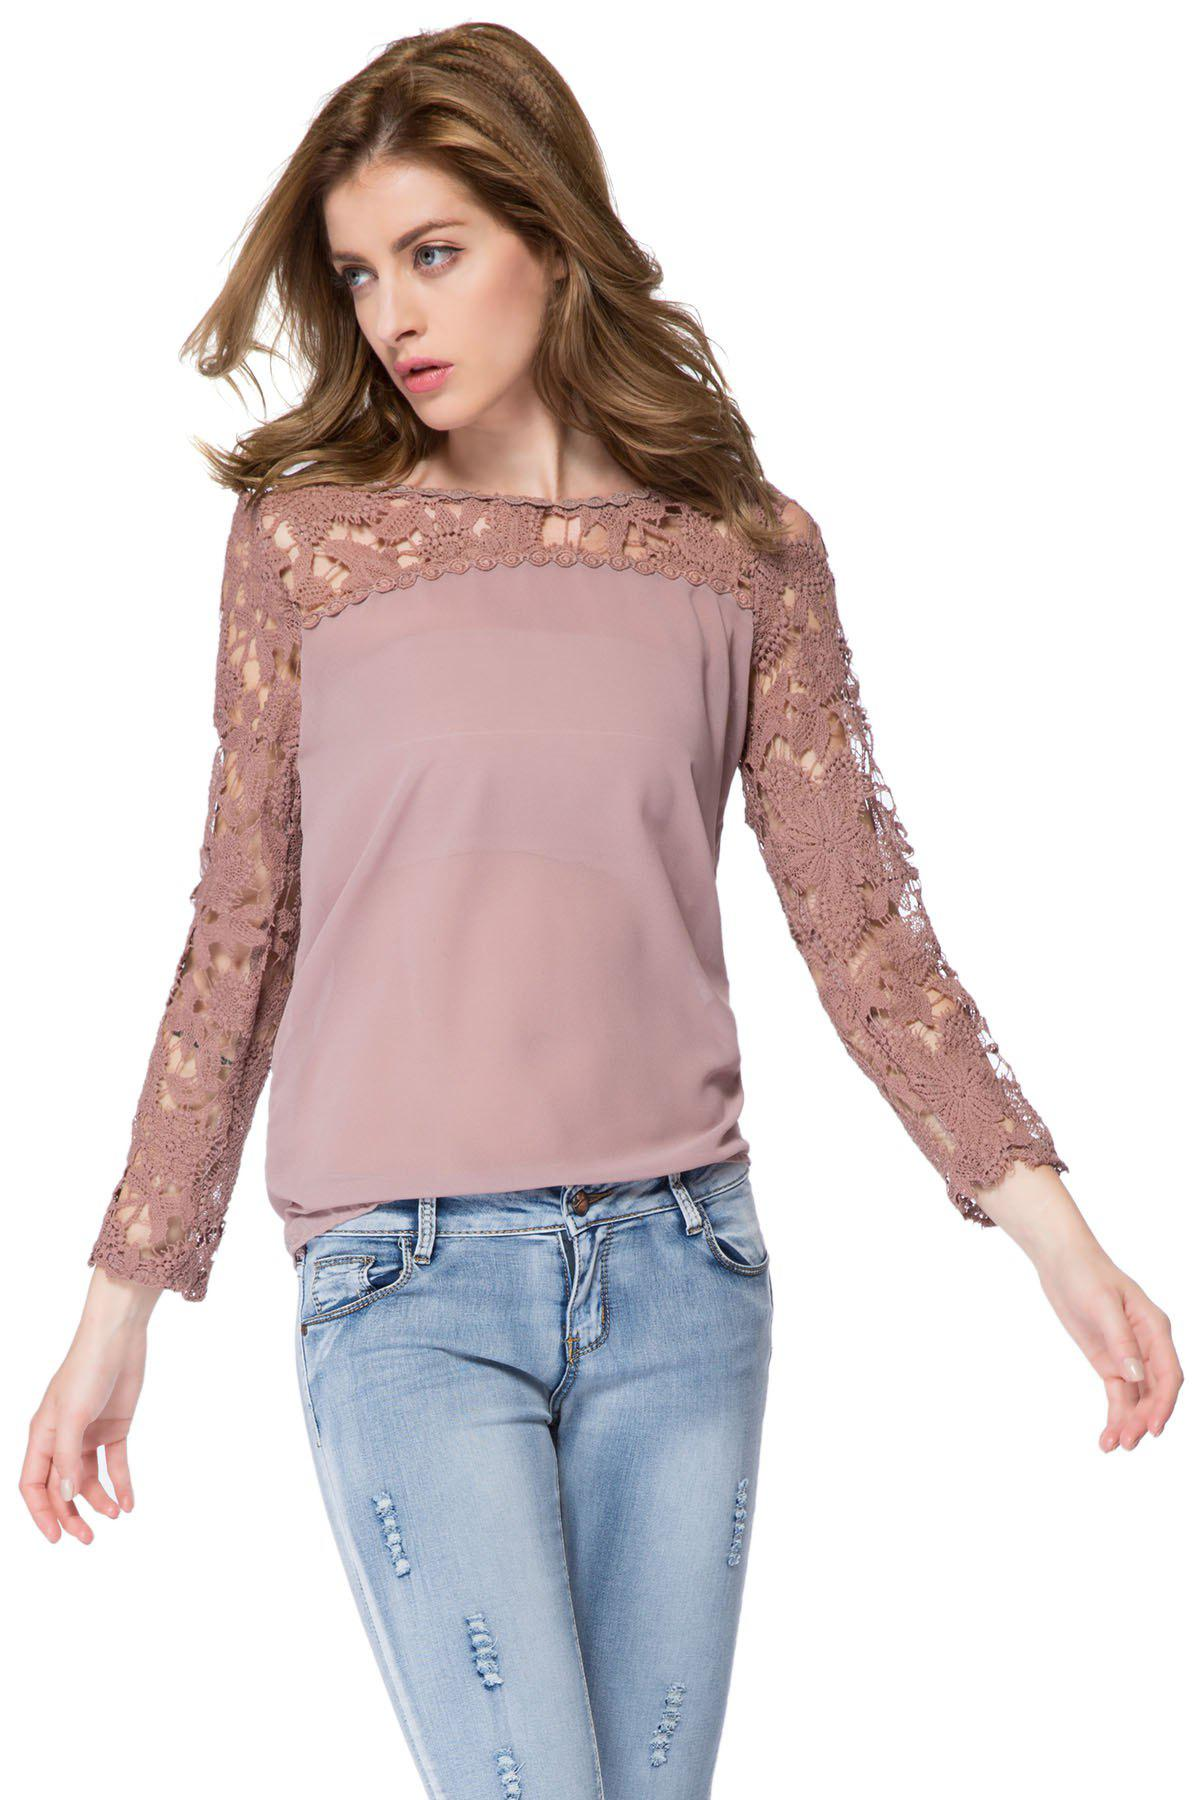 Trendy Long Sleeve Round Collar Spliced Hollow Out Design Blouse - AS THE PICTURE S